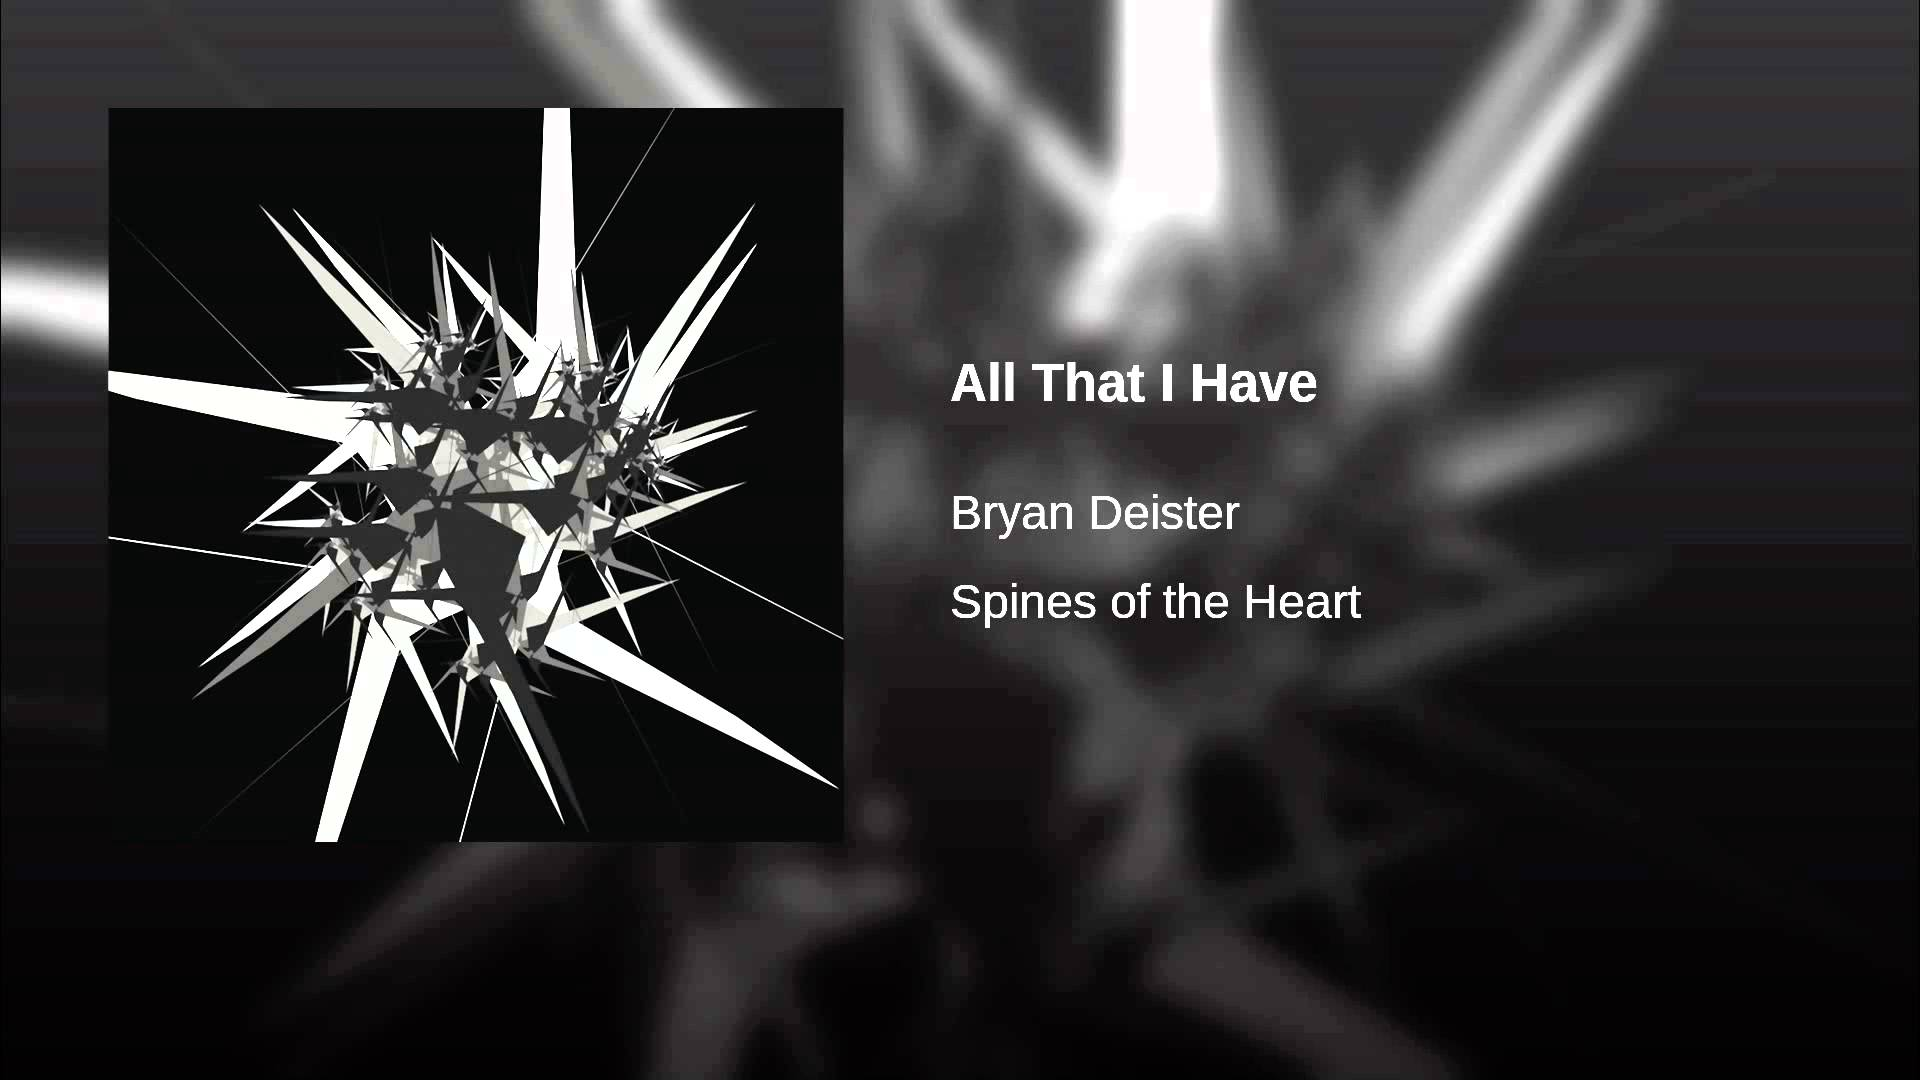 'Spines of the Heart' by Bryan Deister similar to Radiohead but holds its own